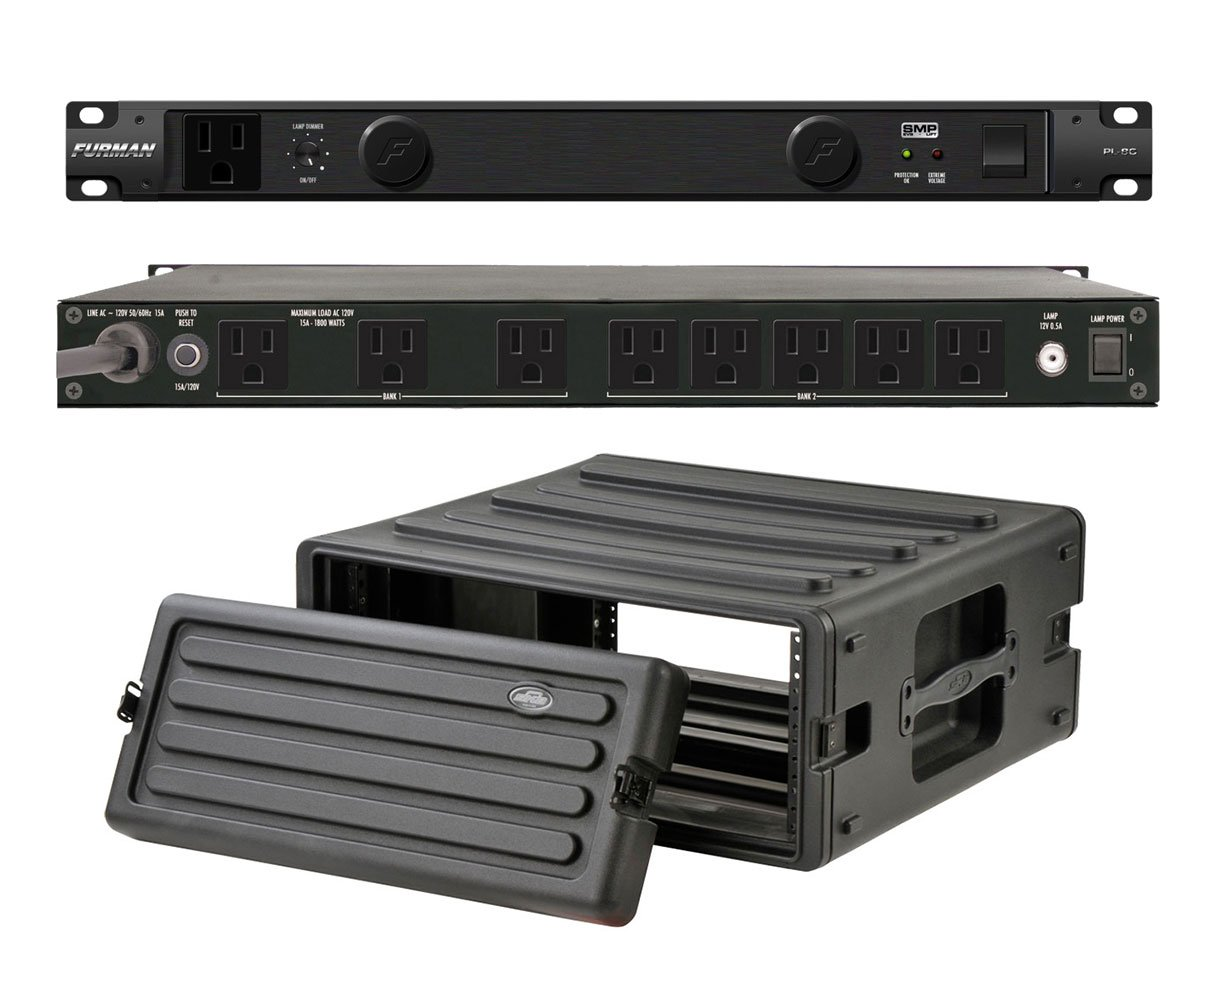 Furman PL-8 C Rack Mount Power Conditioner + SKB 1SKB-R4U Roto Molded 4U Rack